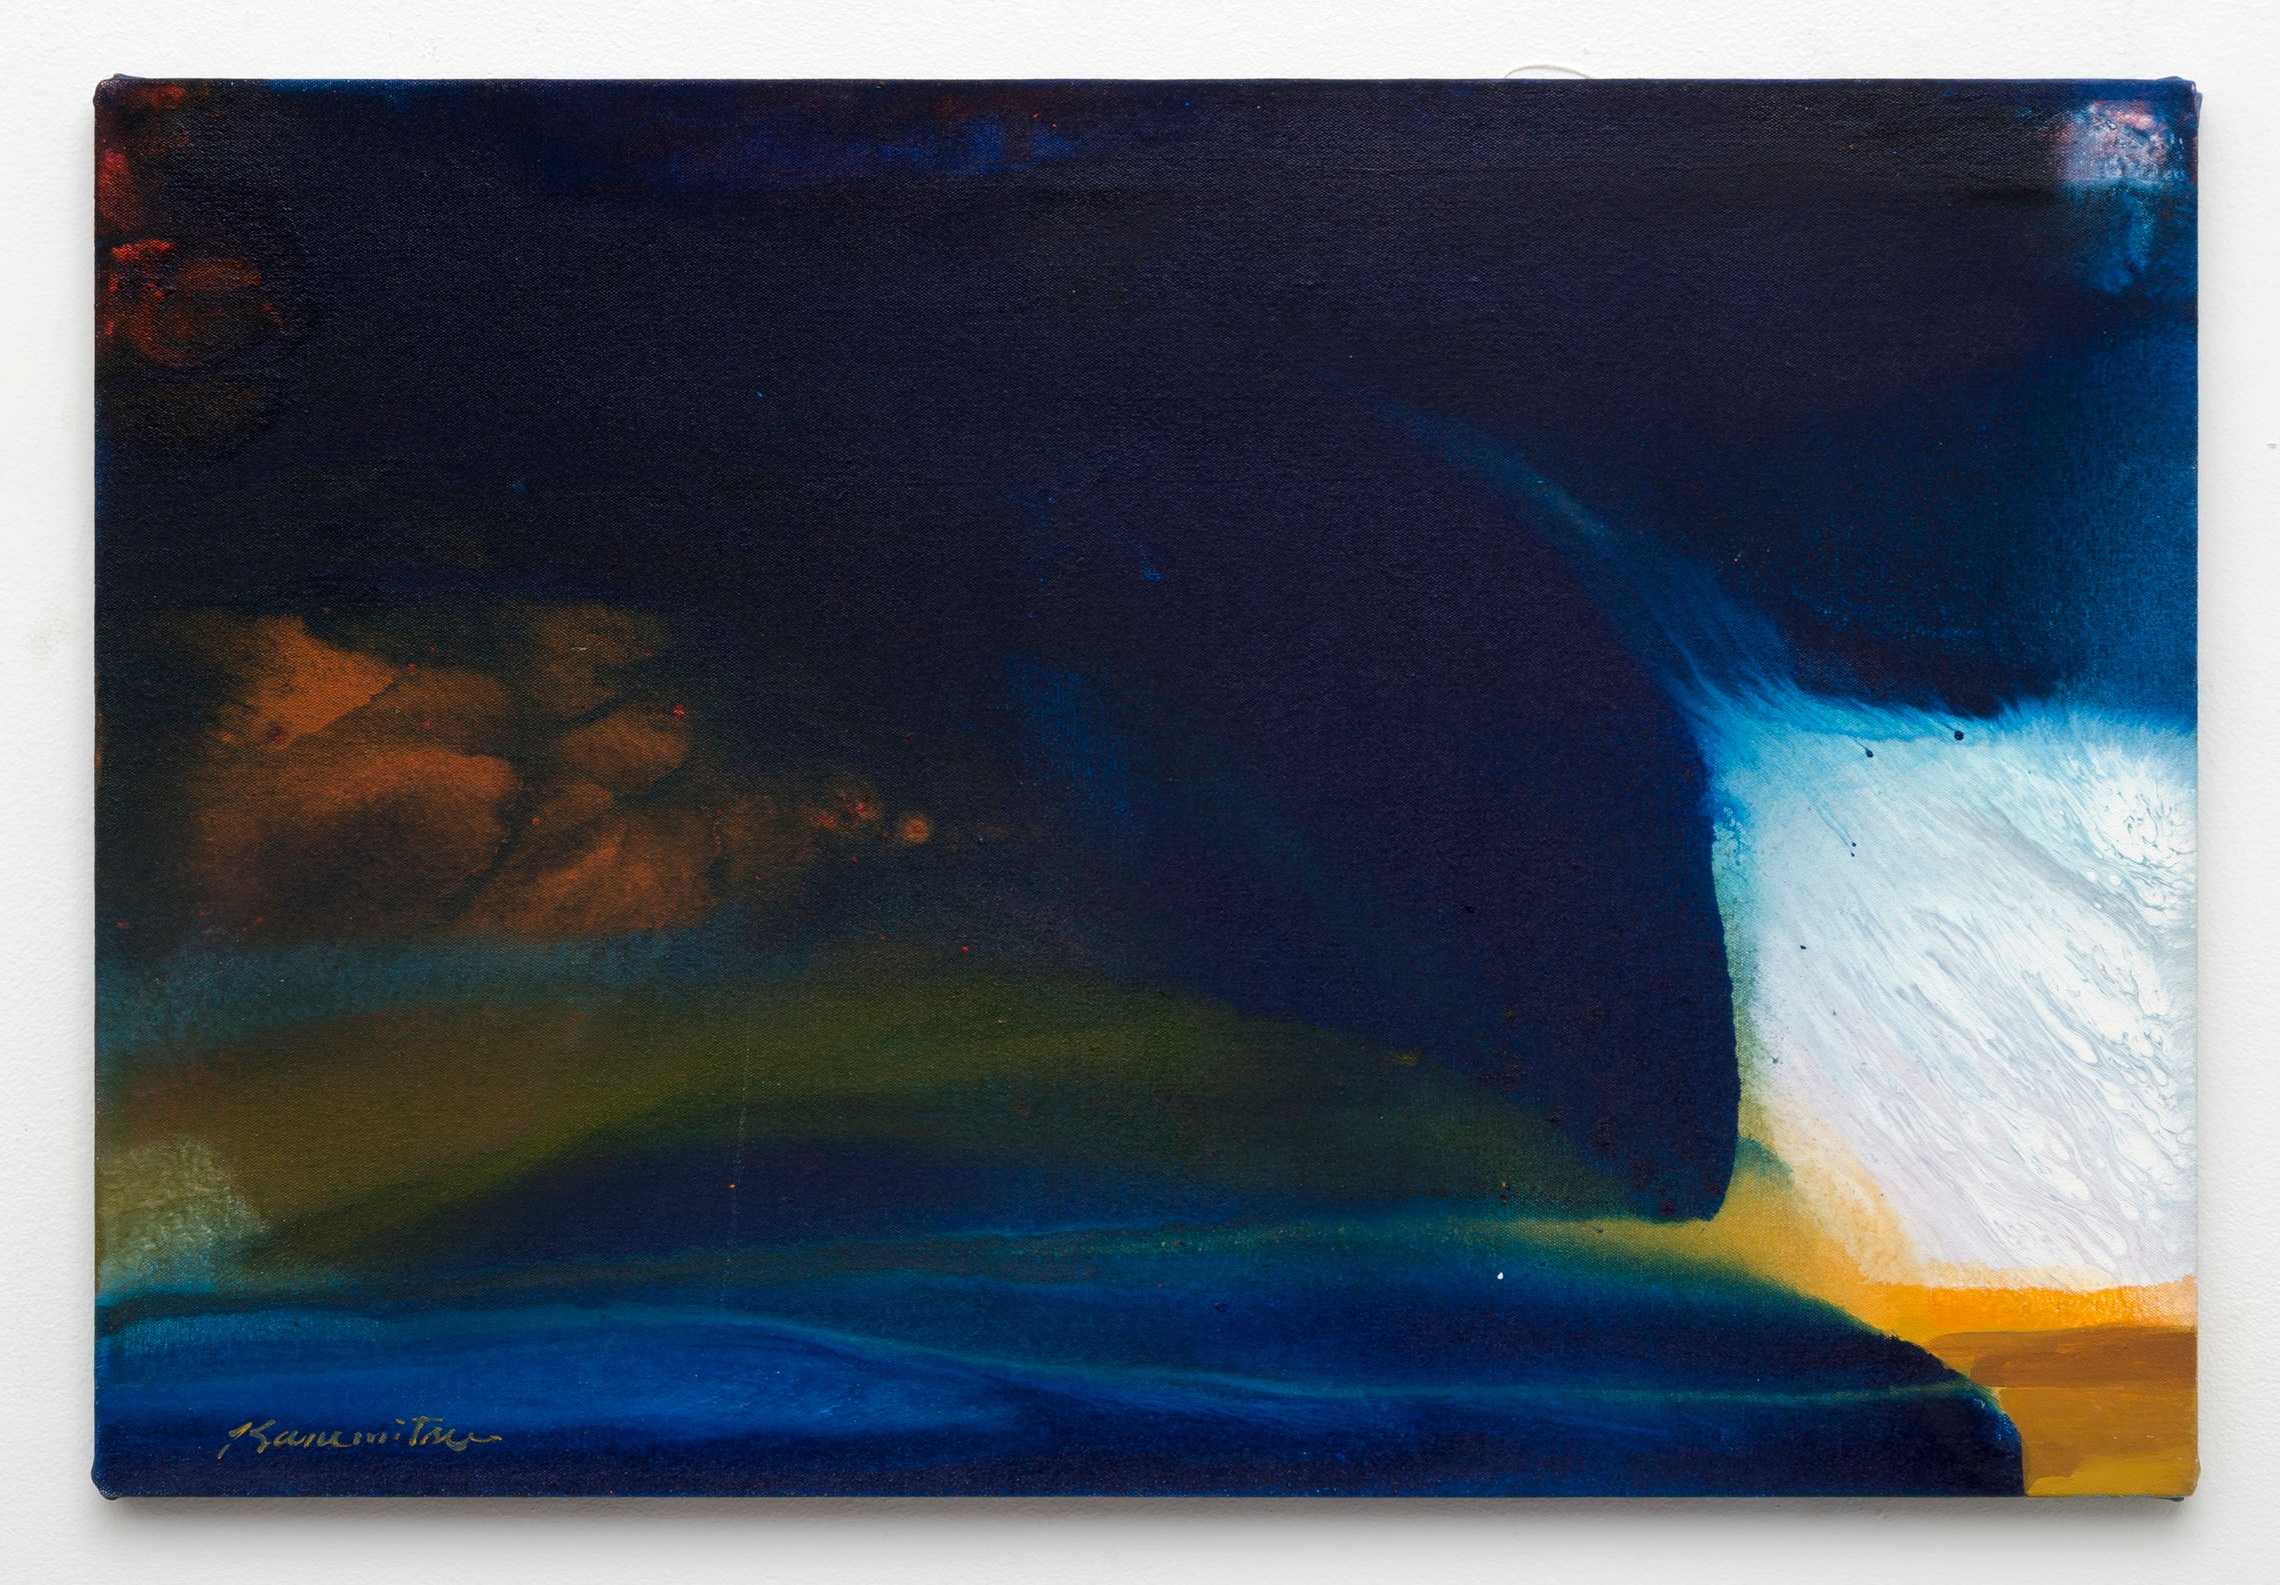 Winter Night   1983  acrylic on canvas  20 x 30 inches, 50.8 x 76.2 centimeters